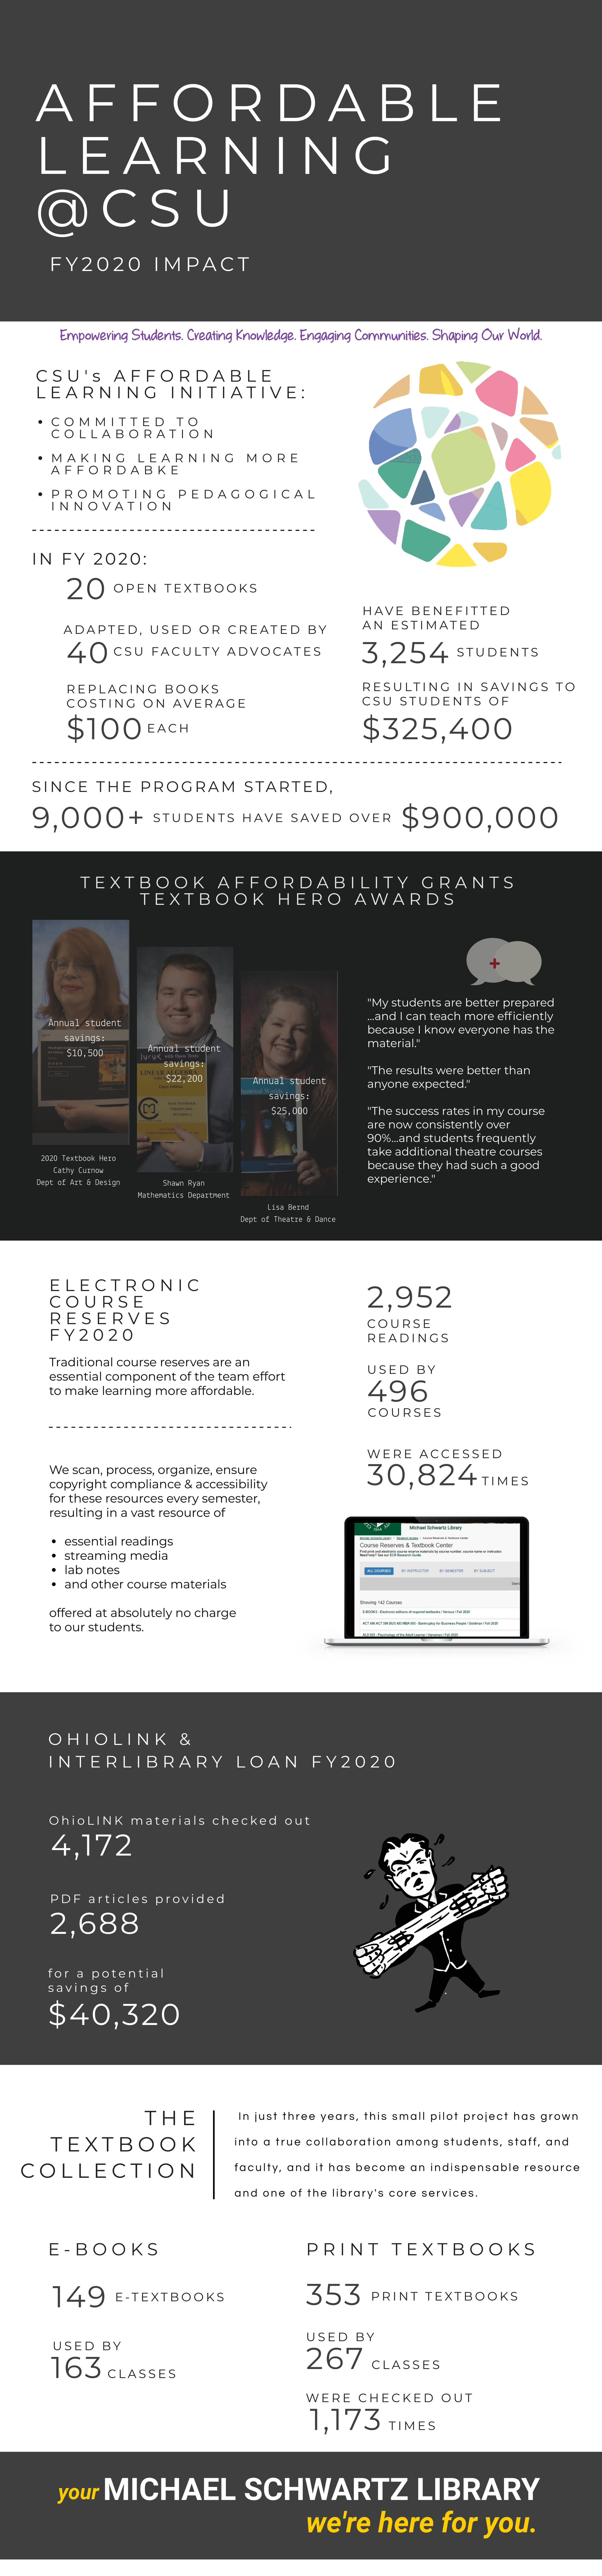 Infographic: Affordable Learning at CSU: fiscal year 2020 Impact